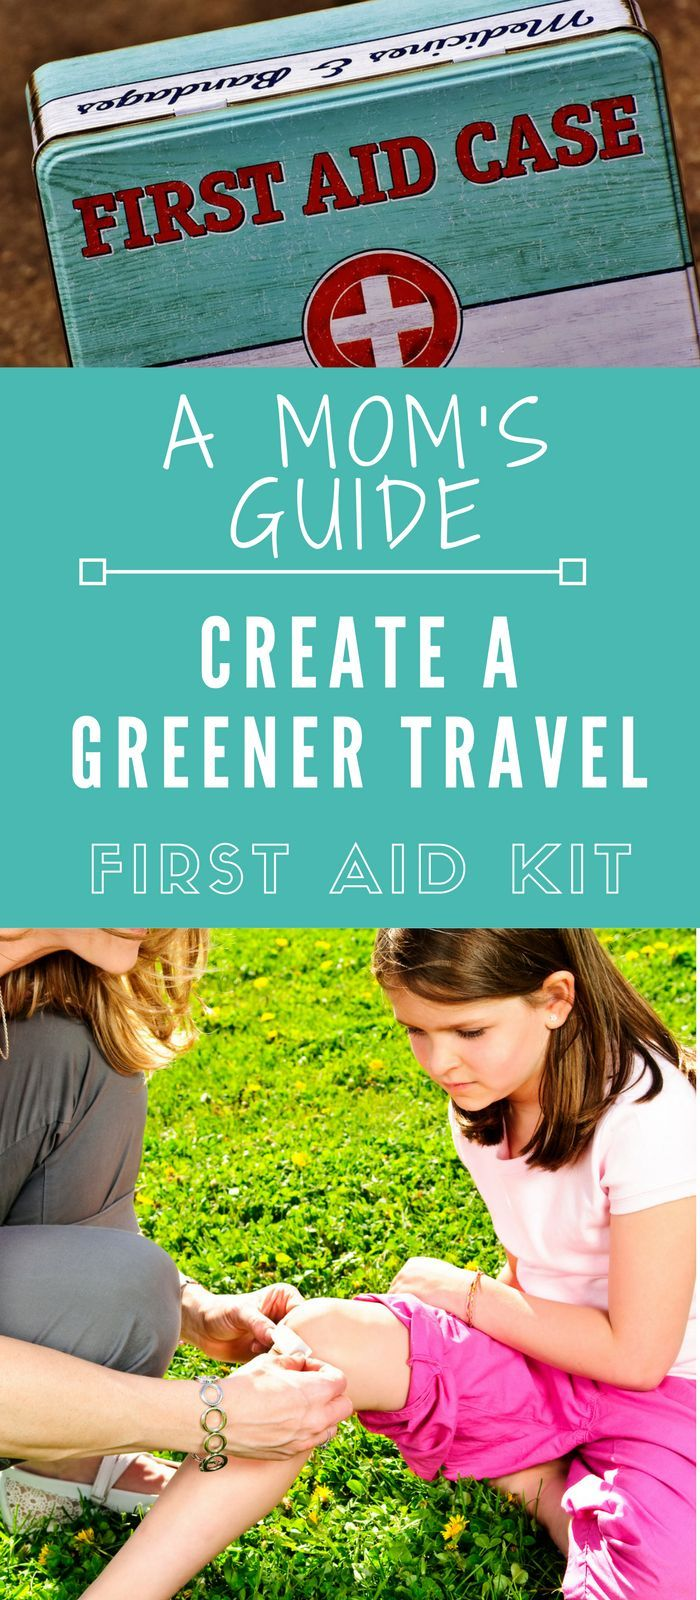 A Mom's Guide to Creating a Greener Family Travel First Aid Kit - Find more natural alternatives for your first aid kit. I share the products I use and what they are for.